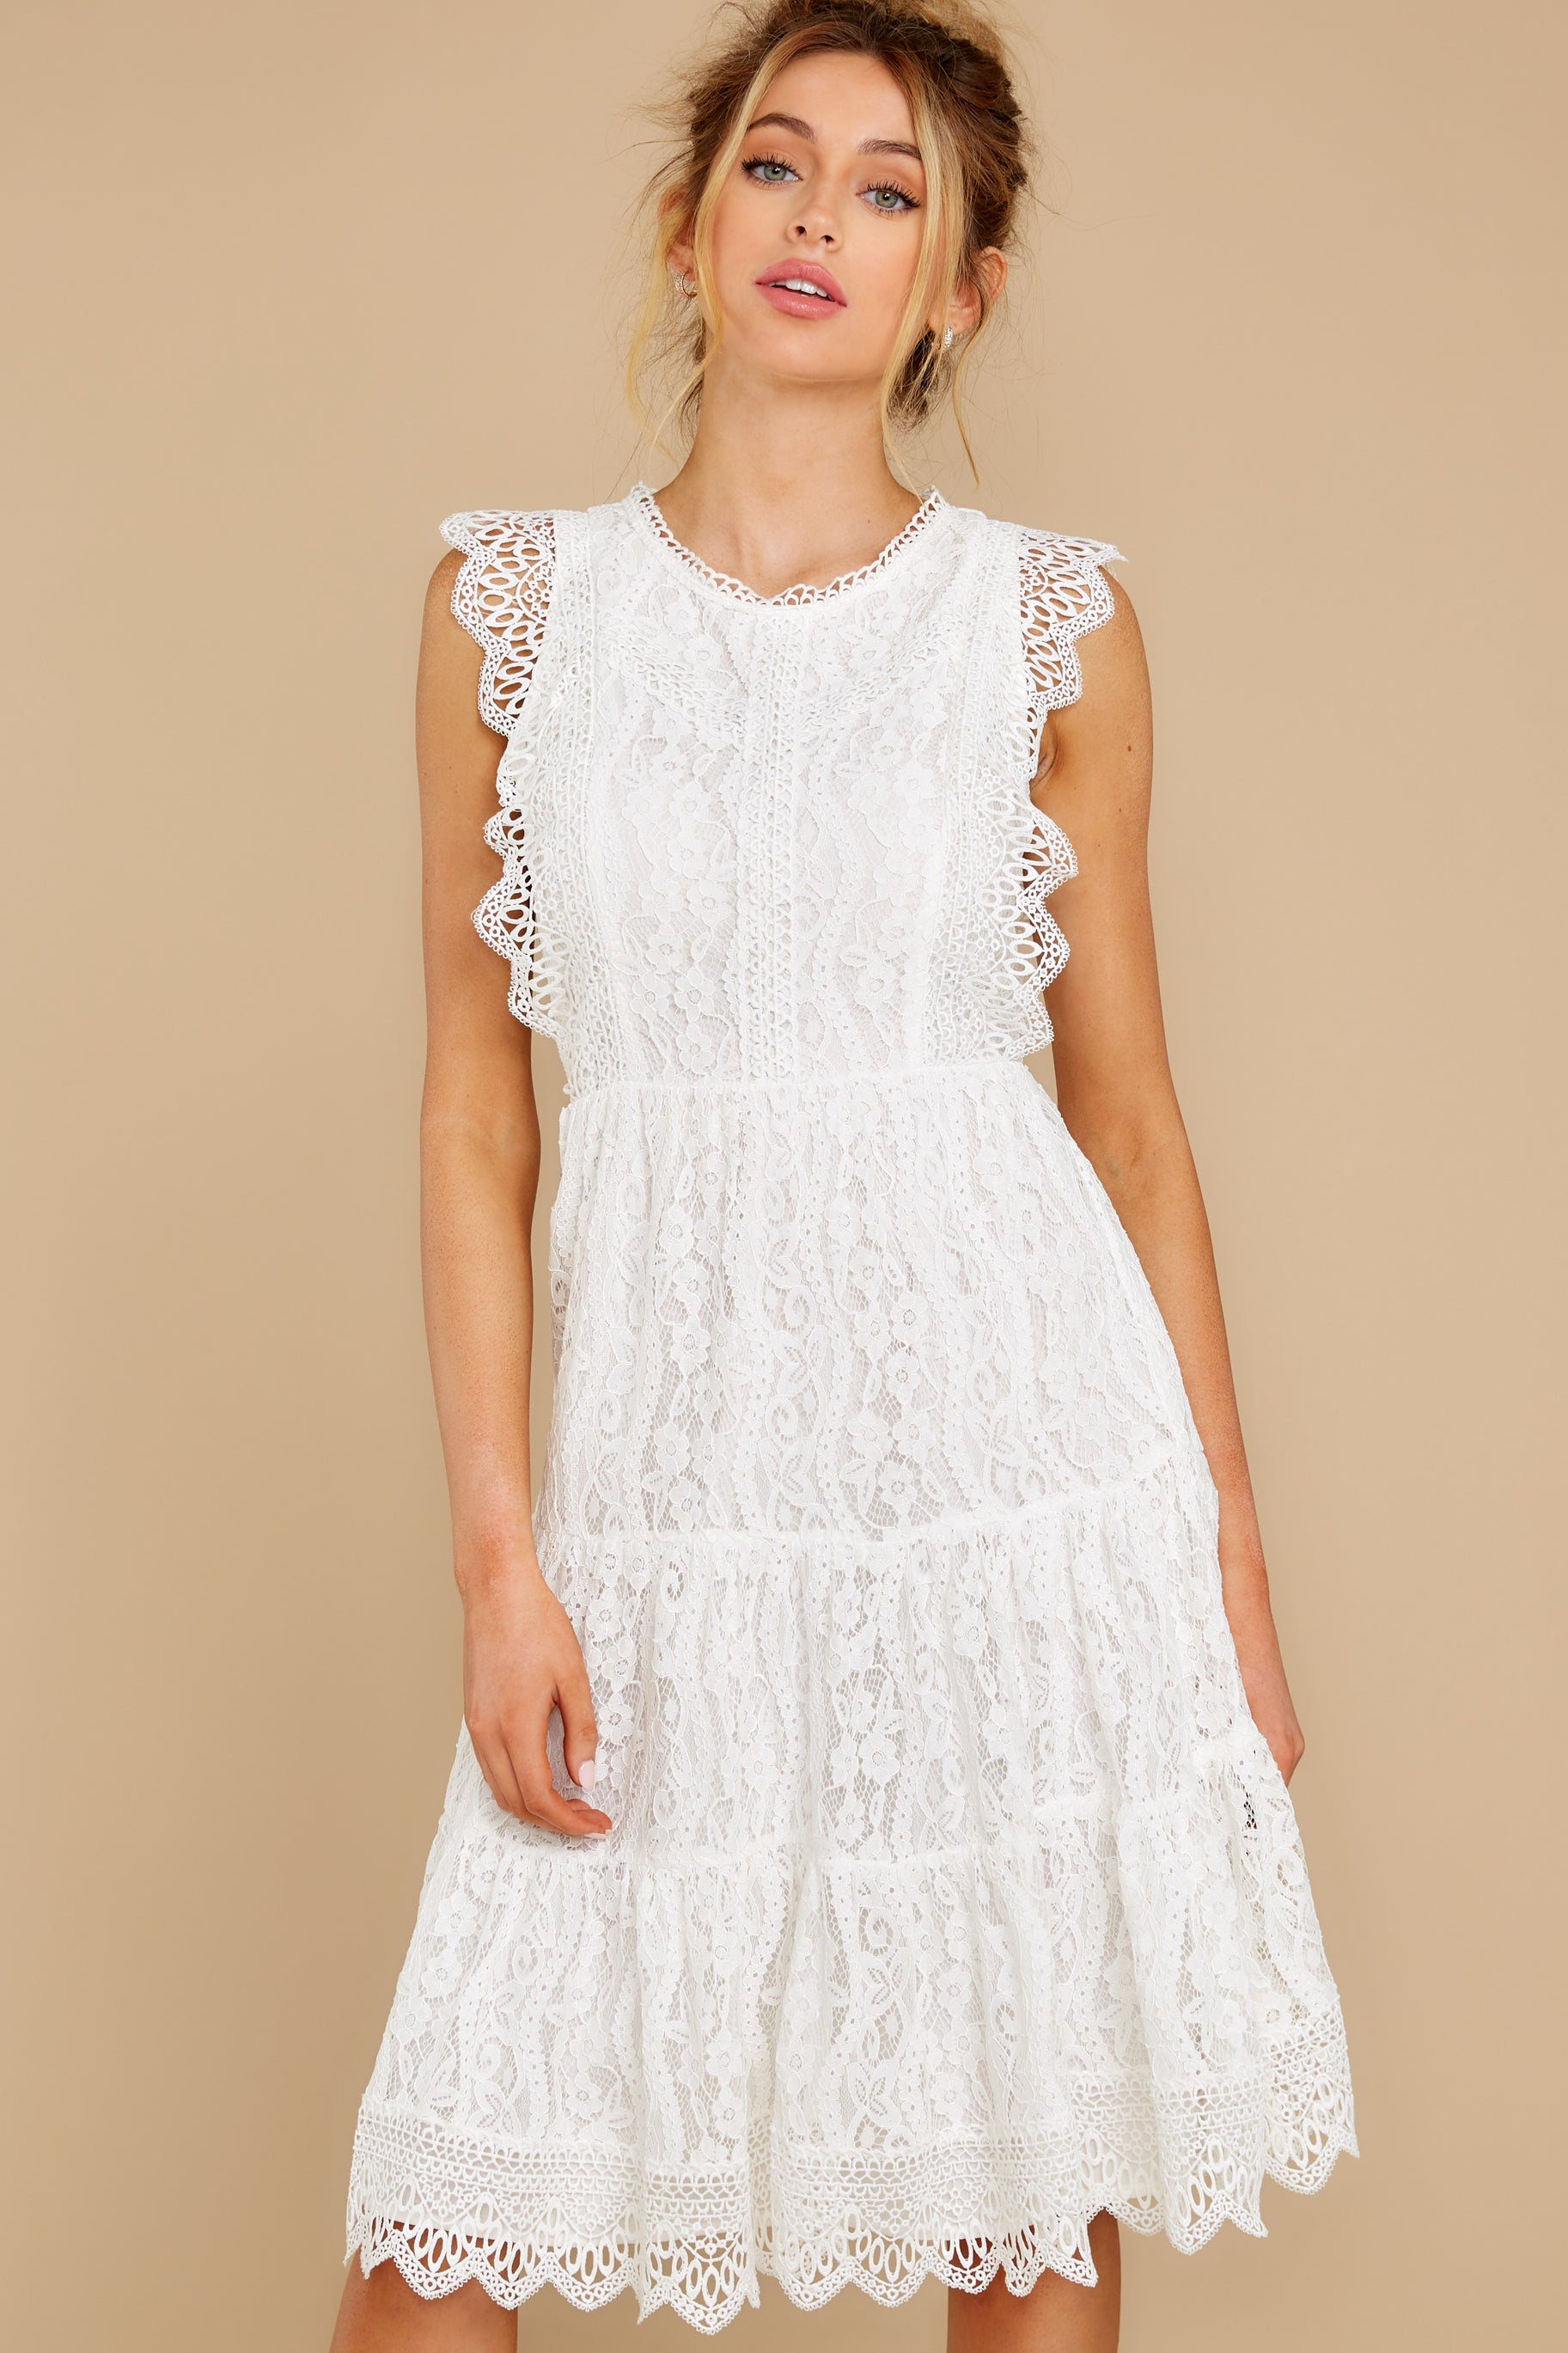 6 Simply Amazing White Lace Dress at reddress.com